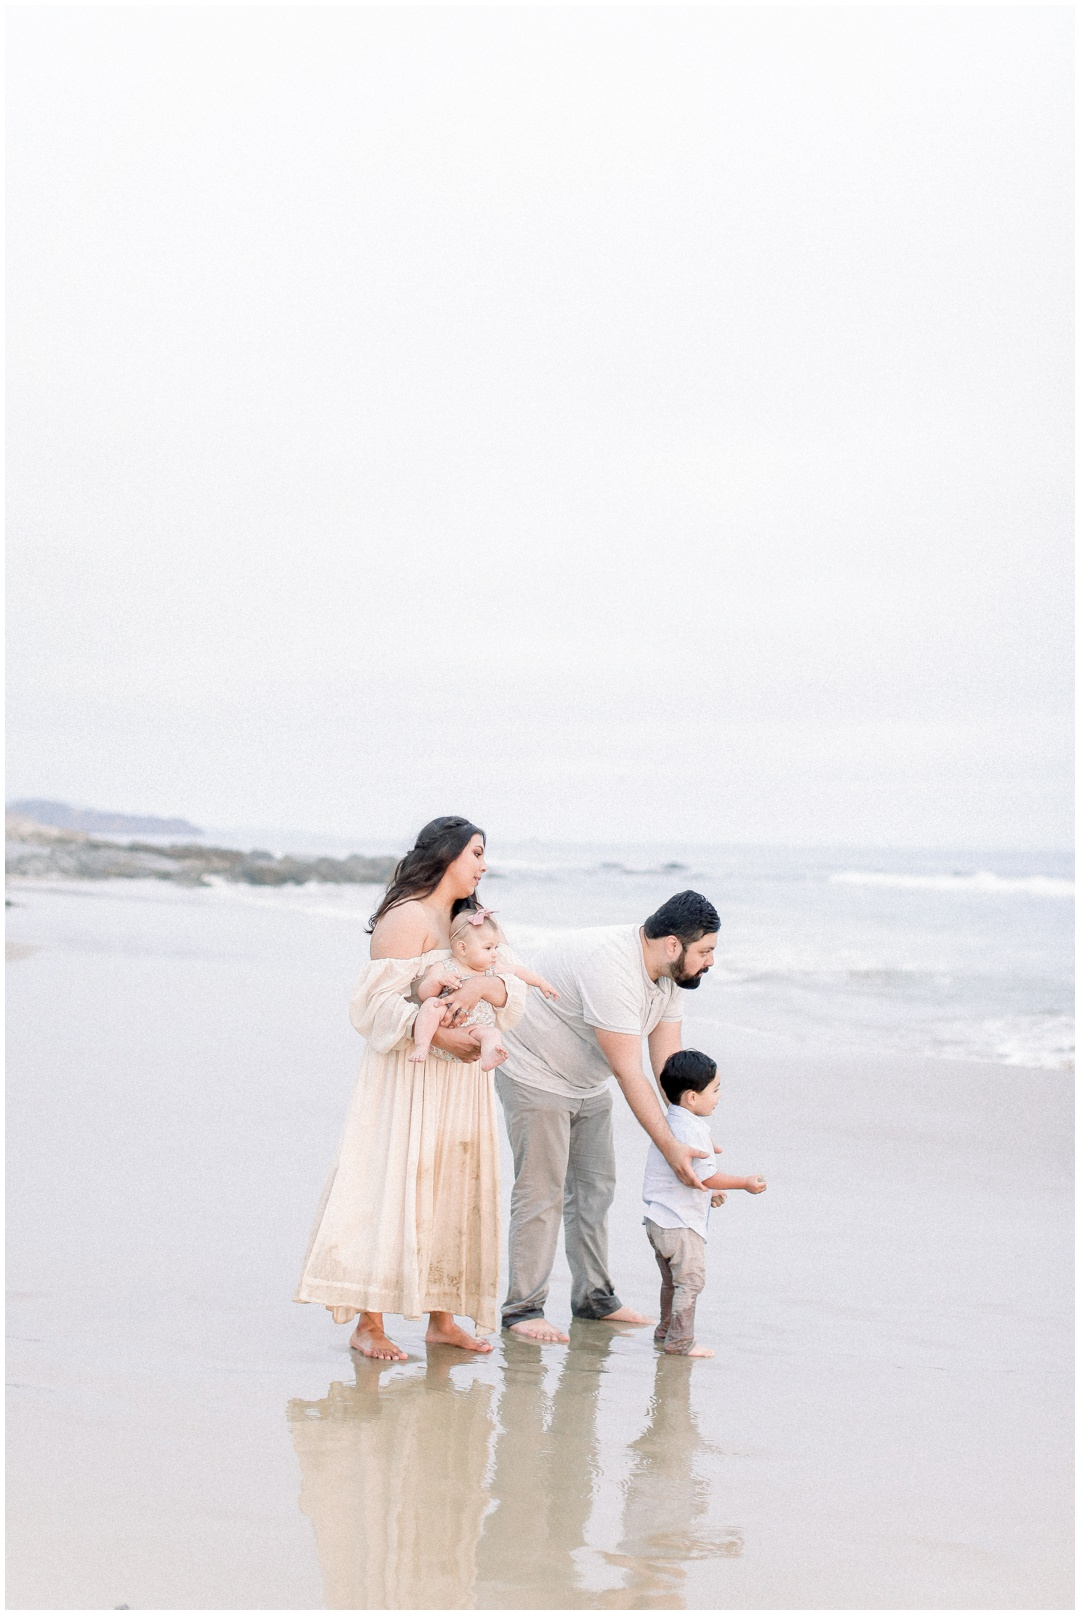 Newport_Beach_Newborn_Light_Airy_Natural_Photographer_Newport_Beach_Photographer_Orange_County_Family_Photographer_Cori_Kleckner_Photography_Huntington_Beach_Photographer_Family_OC_Newborn_Natalie_Nunez_Thomas_Nunez_Natalie_Roca_Rosh_Nunez_Family_3576.jpg